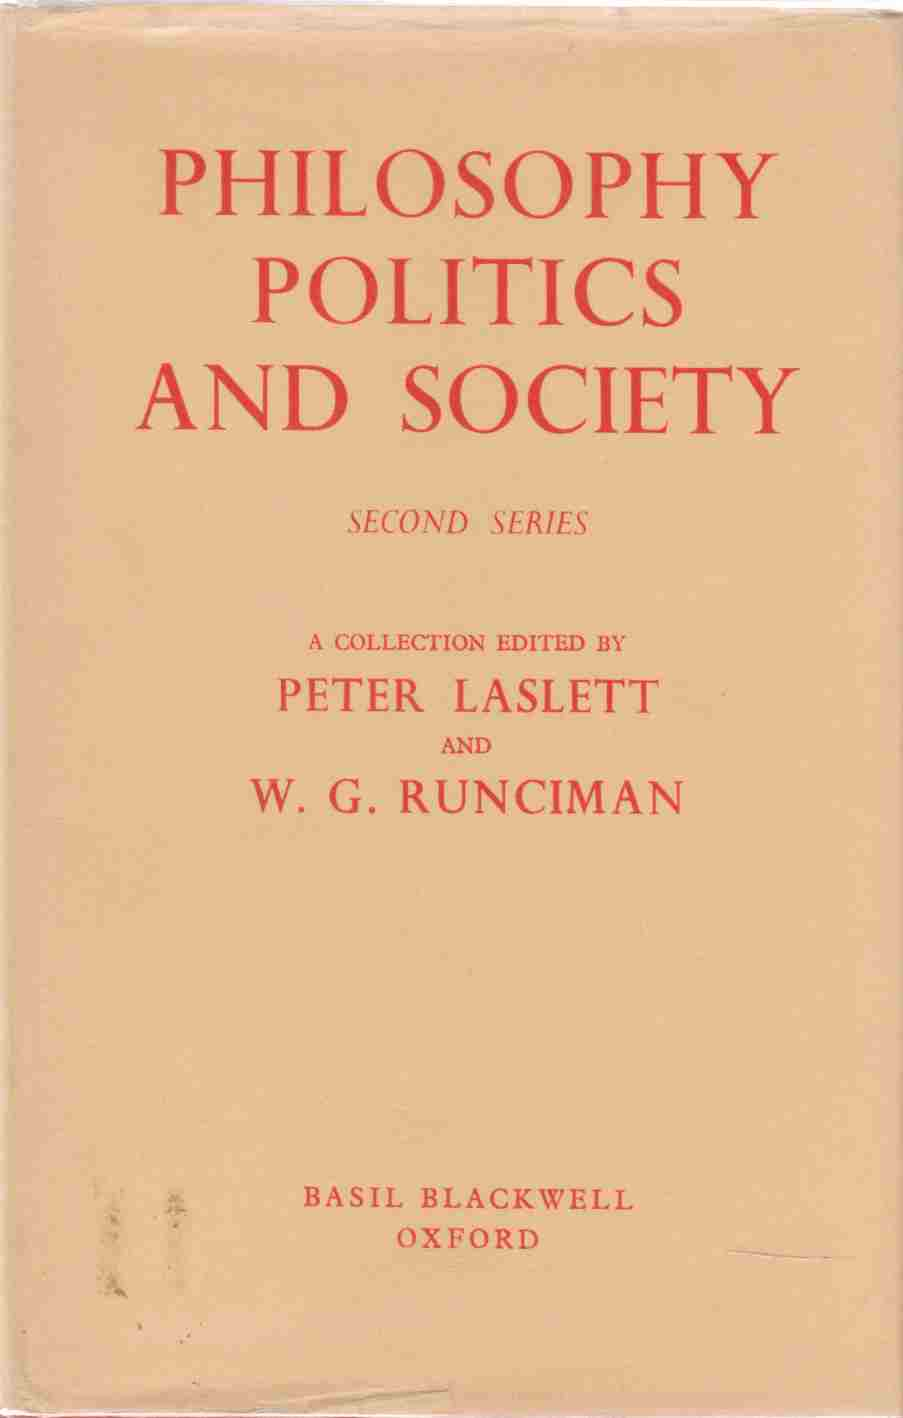 Image for Philosophy, Politics and Society Second Series